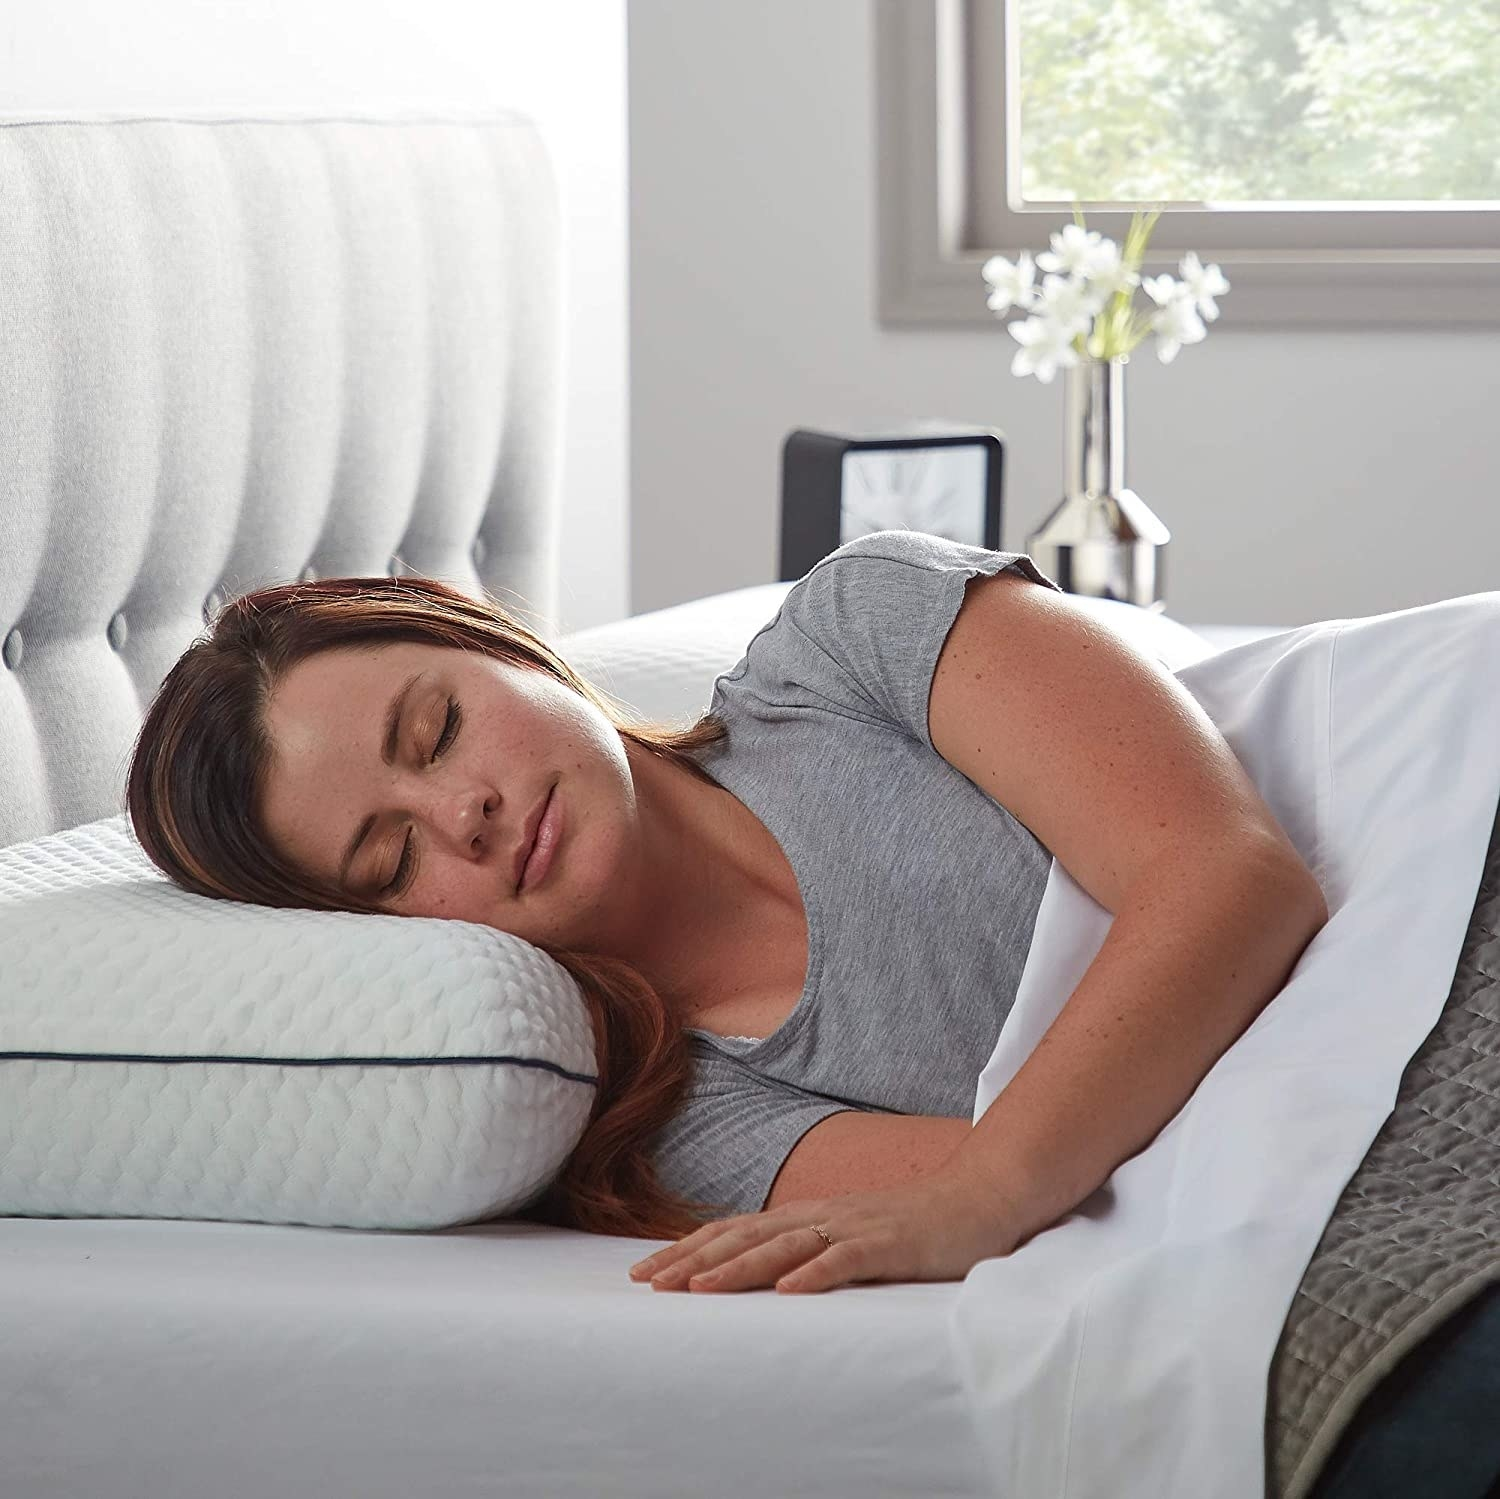 Model sleeping on their side with the pillow